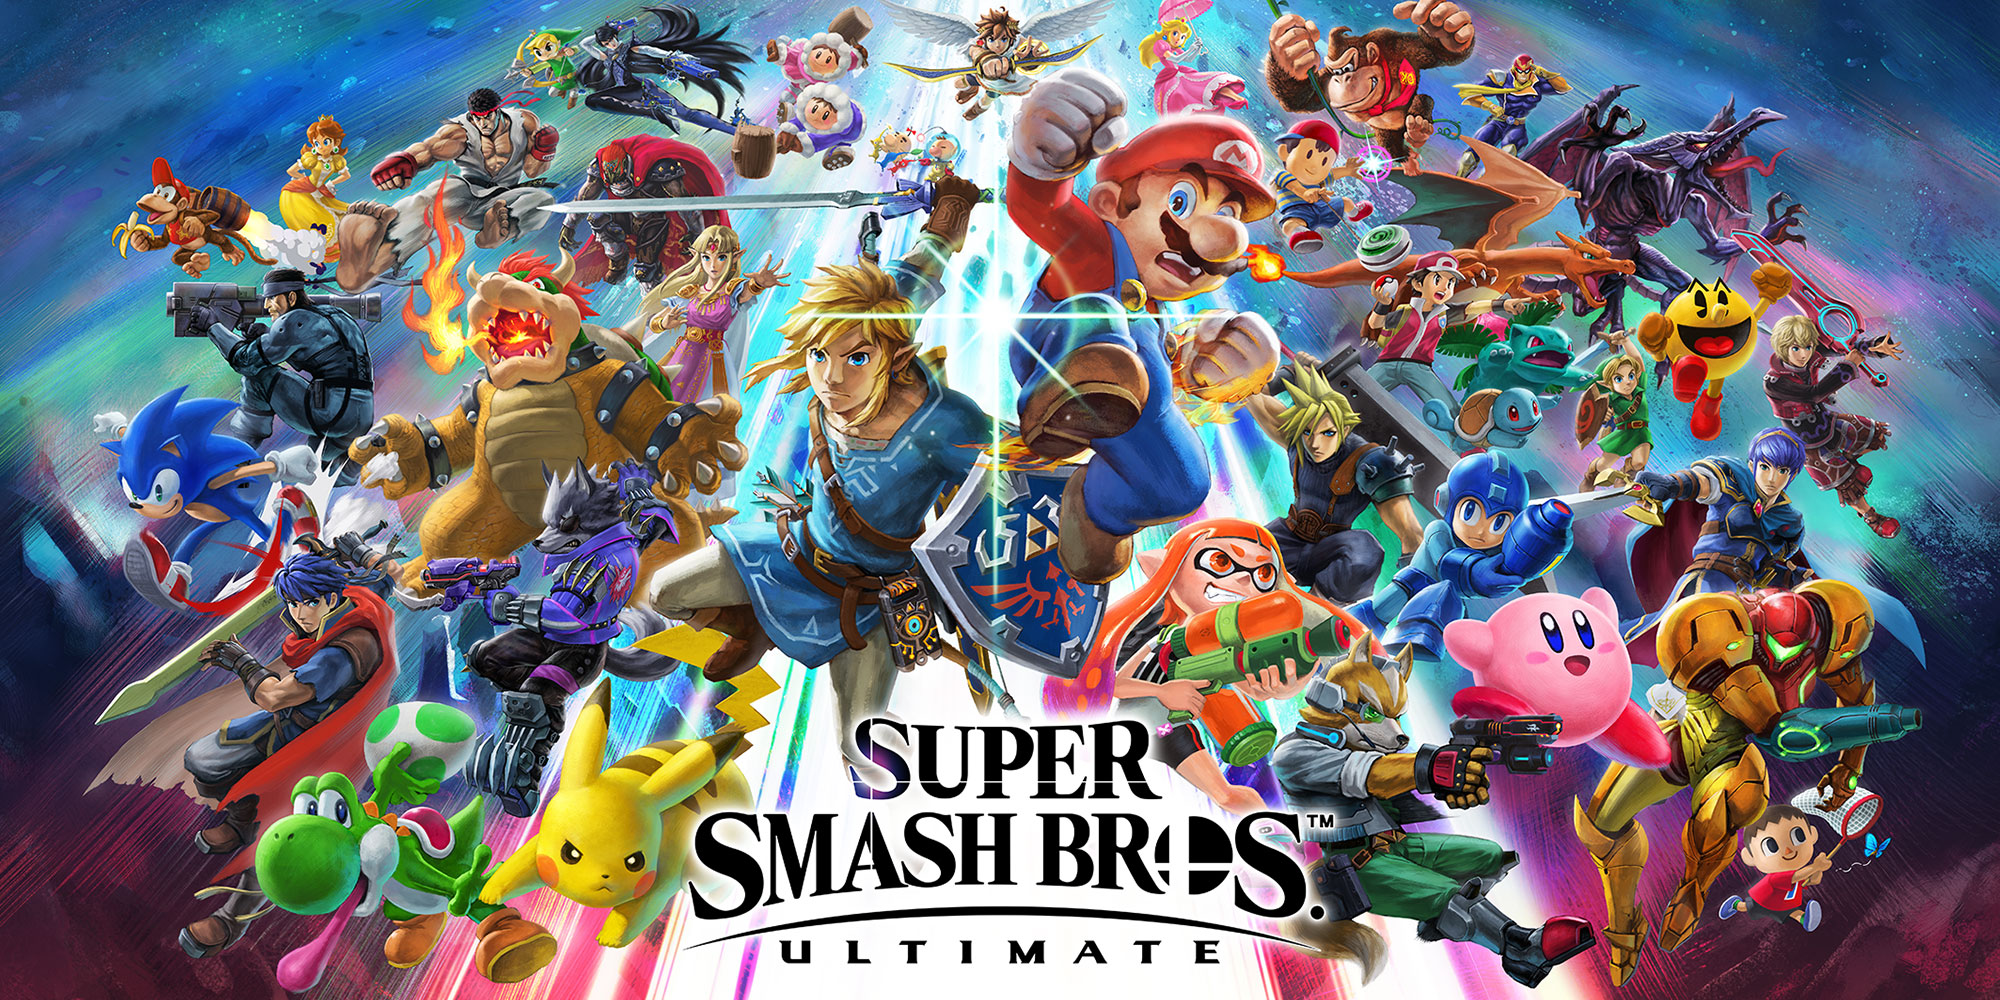 O duo Banjo & Kazooie e o Hero, de Dragon Quest, juntam-se aos combates de Super Smash Bros. Ultimate!